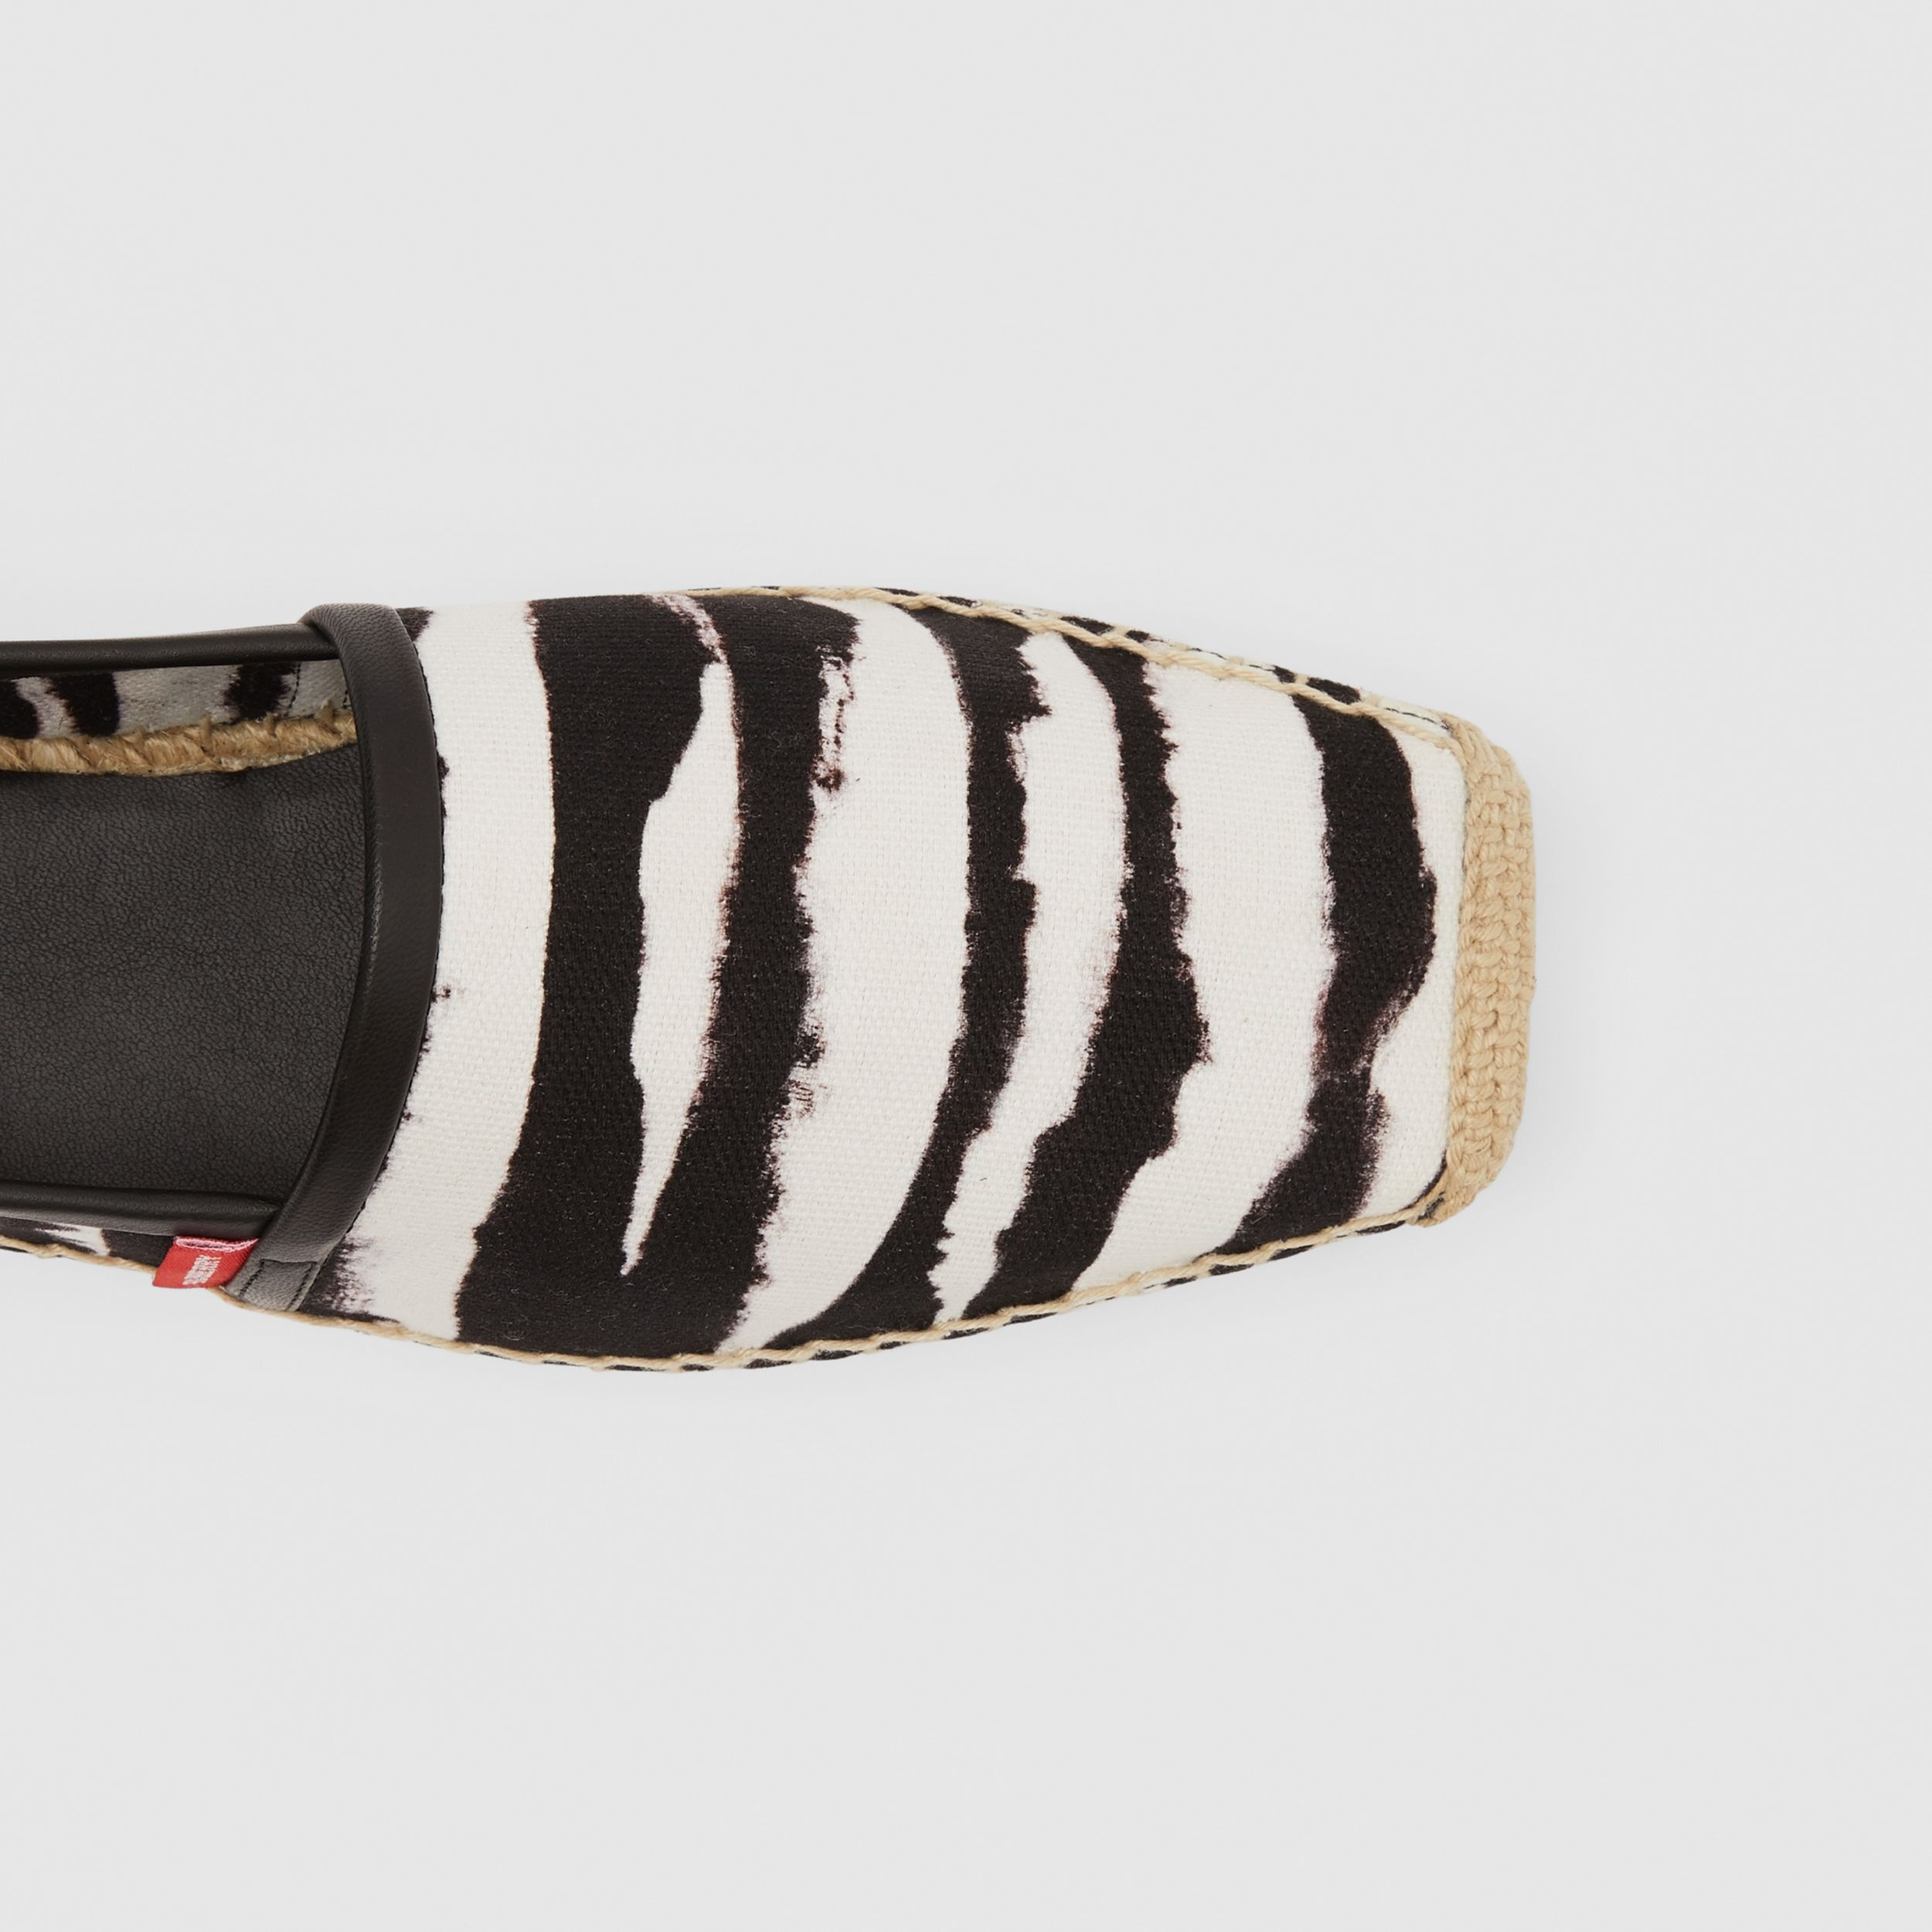 Watercolour Print Cotton Canvas Espadrilles in Black/white - Women | Burberry Hong Kong S.A.R. - 2